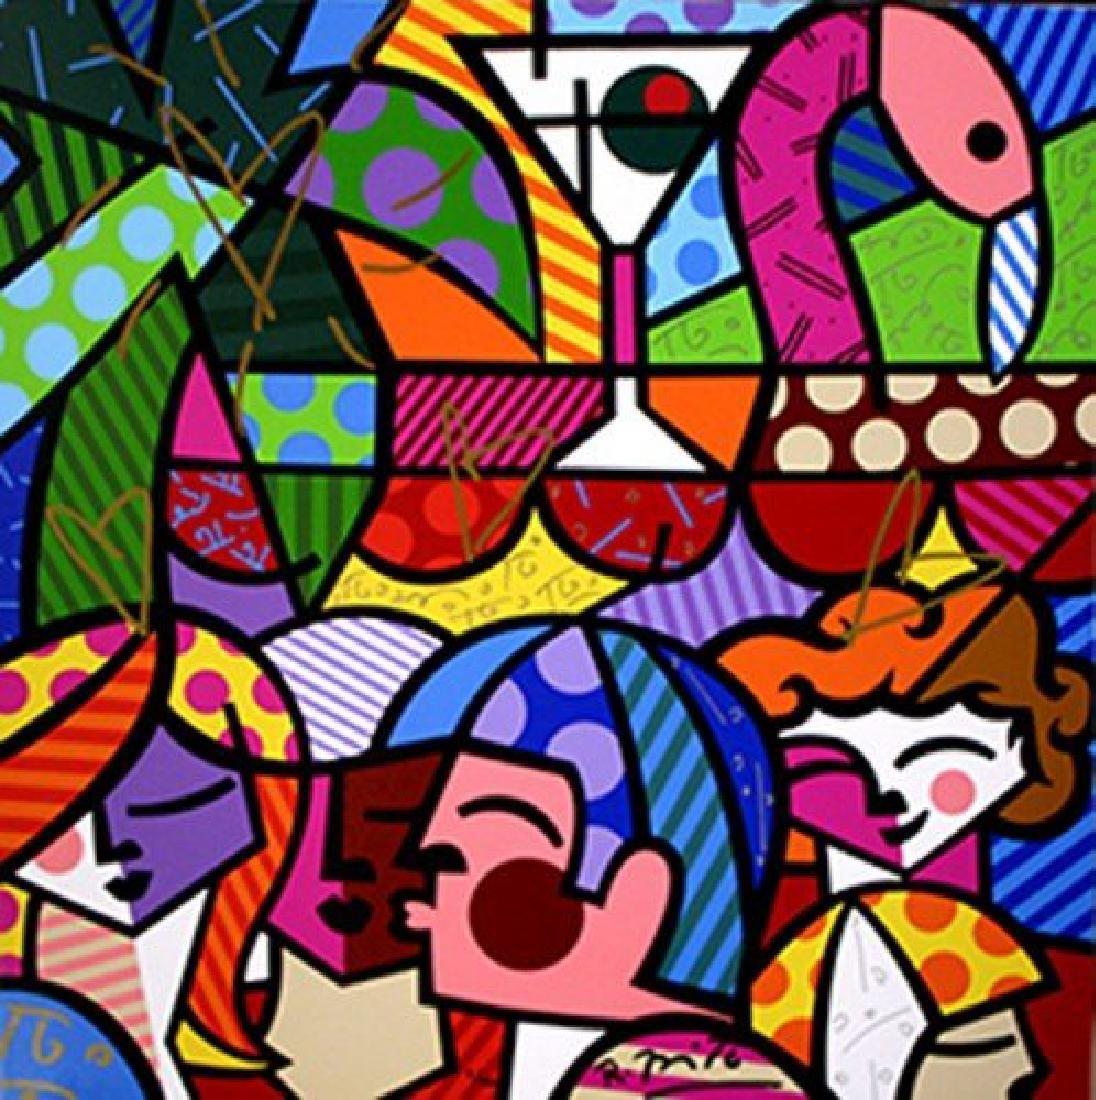 ROMERO BRITTO Title: NEWS CAFE GICLEE ON CANVAS